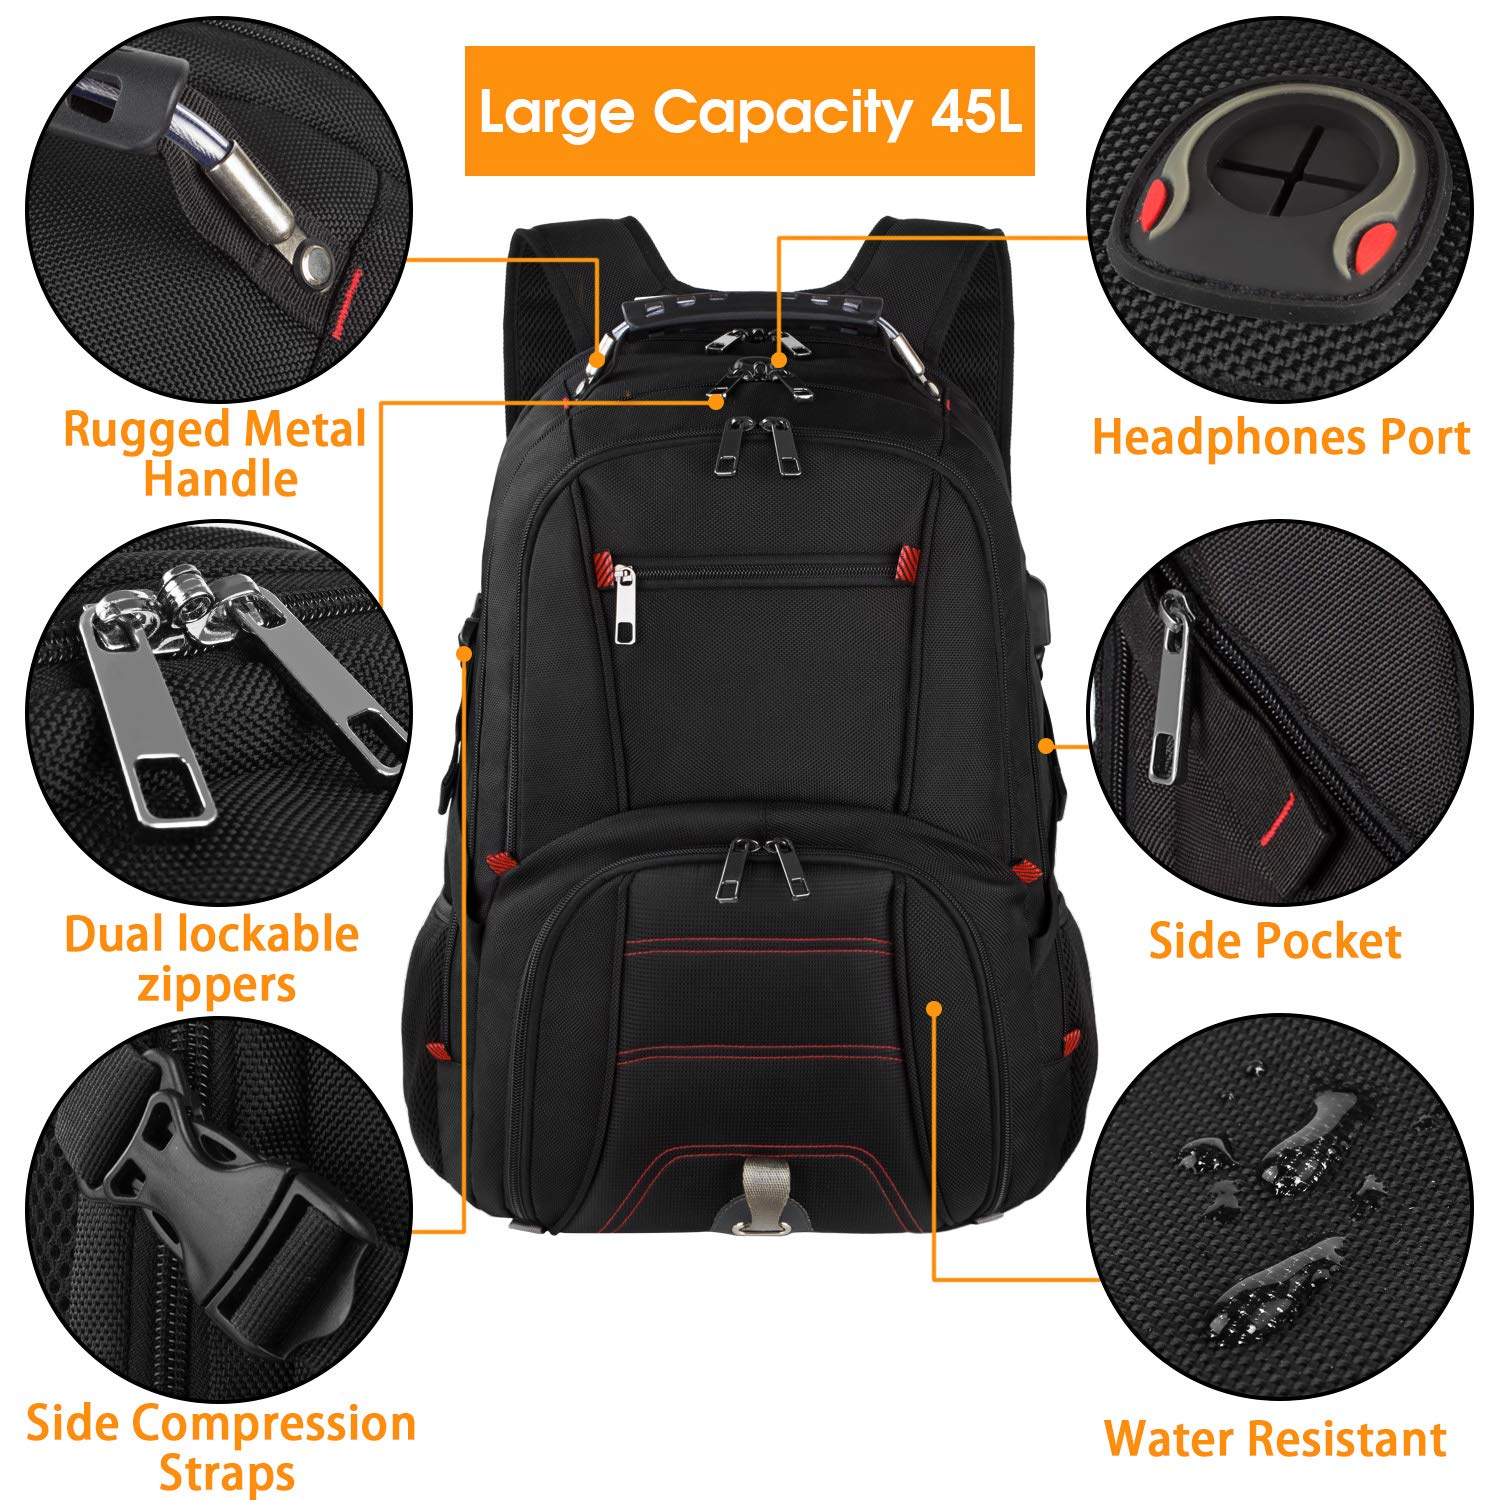 Extra Large Backpack,Travel Laptop Backpack TSA Friendly Durable Computer Backpack with USB Charging Port for Men&Women,Water-Resistant Big Business College School Bookbag Fits 17 Inch Laptop&Notebook by Tinvic (Image #4)